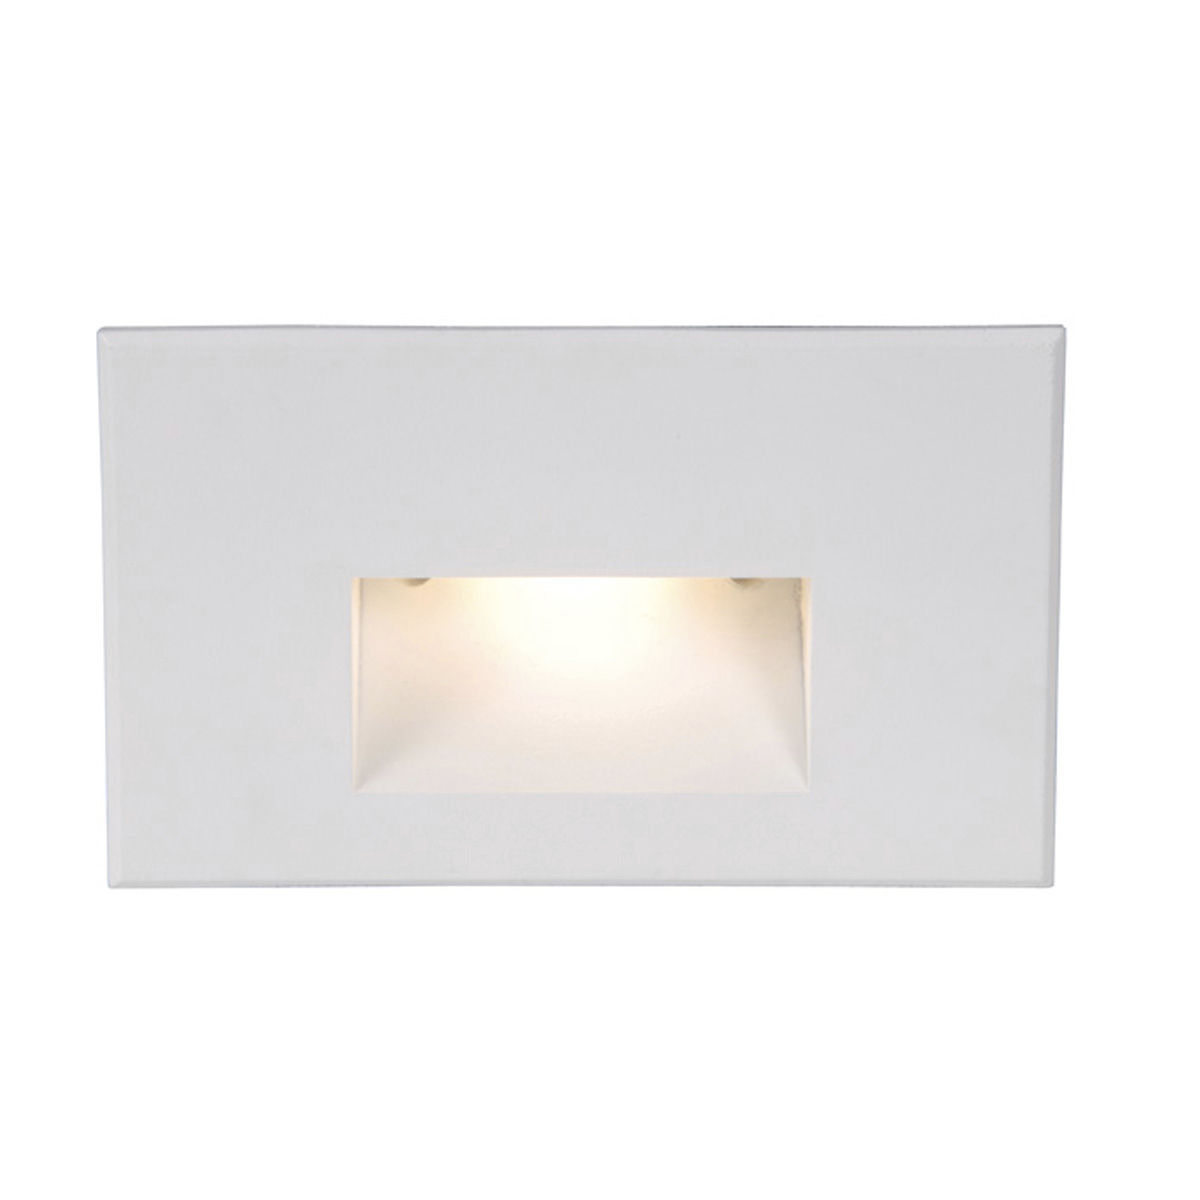 Recessed wall light fixture led rectangular outdoor wl 100 recessed wall light fixture led rectangular outdoor wl 100 wac lighting arubaitofo Gallery